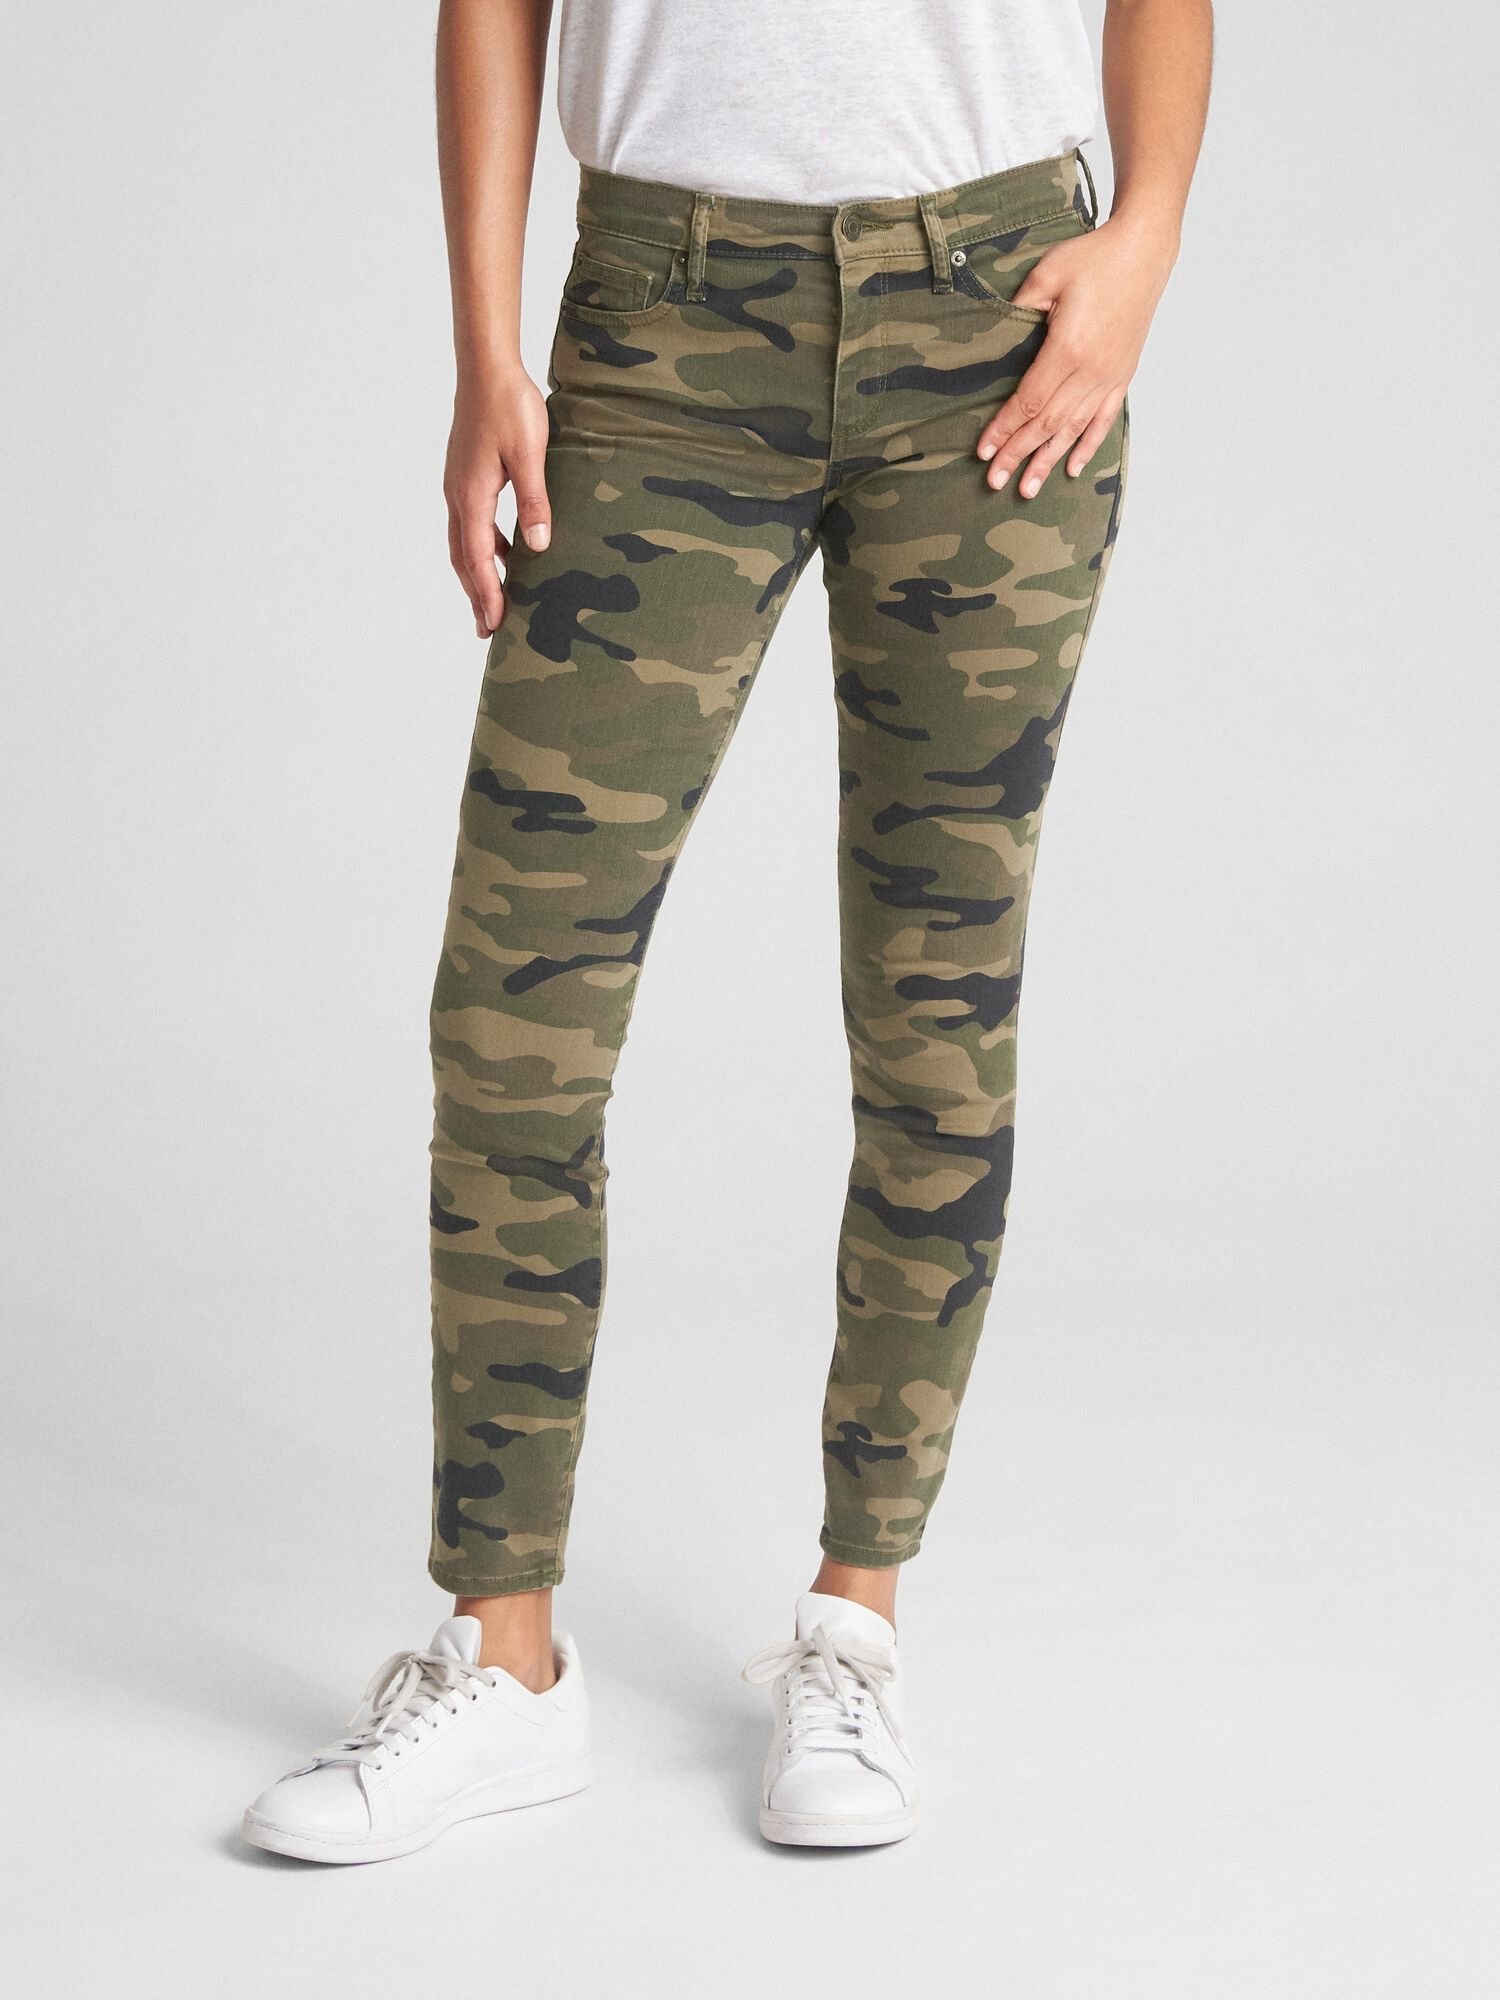 20b9be7d119 Mid Rise True Skinny Ankle Jeans in Camo | Gap® UK